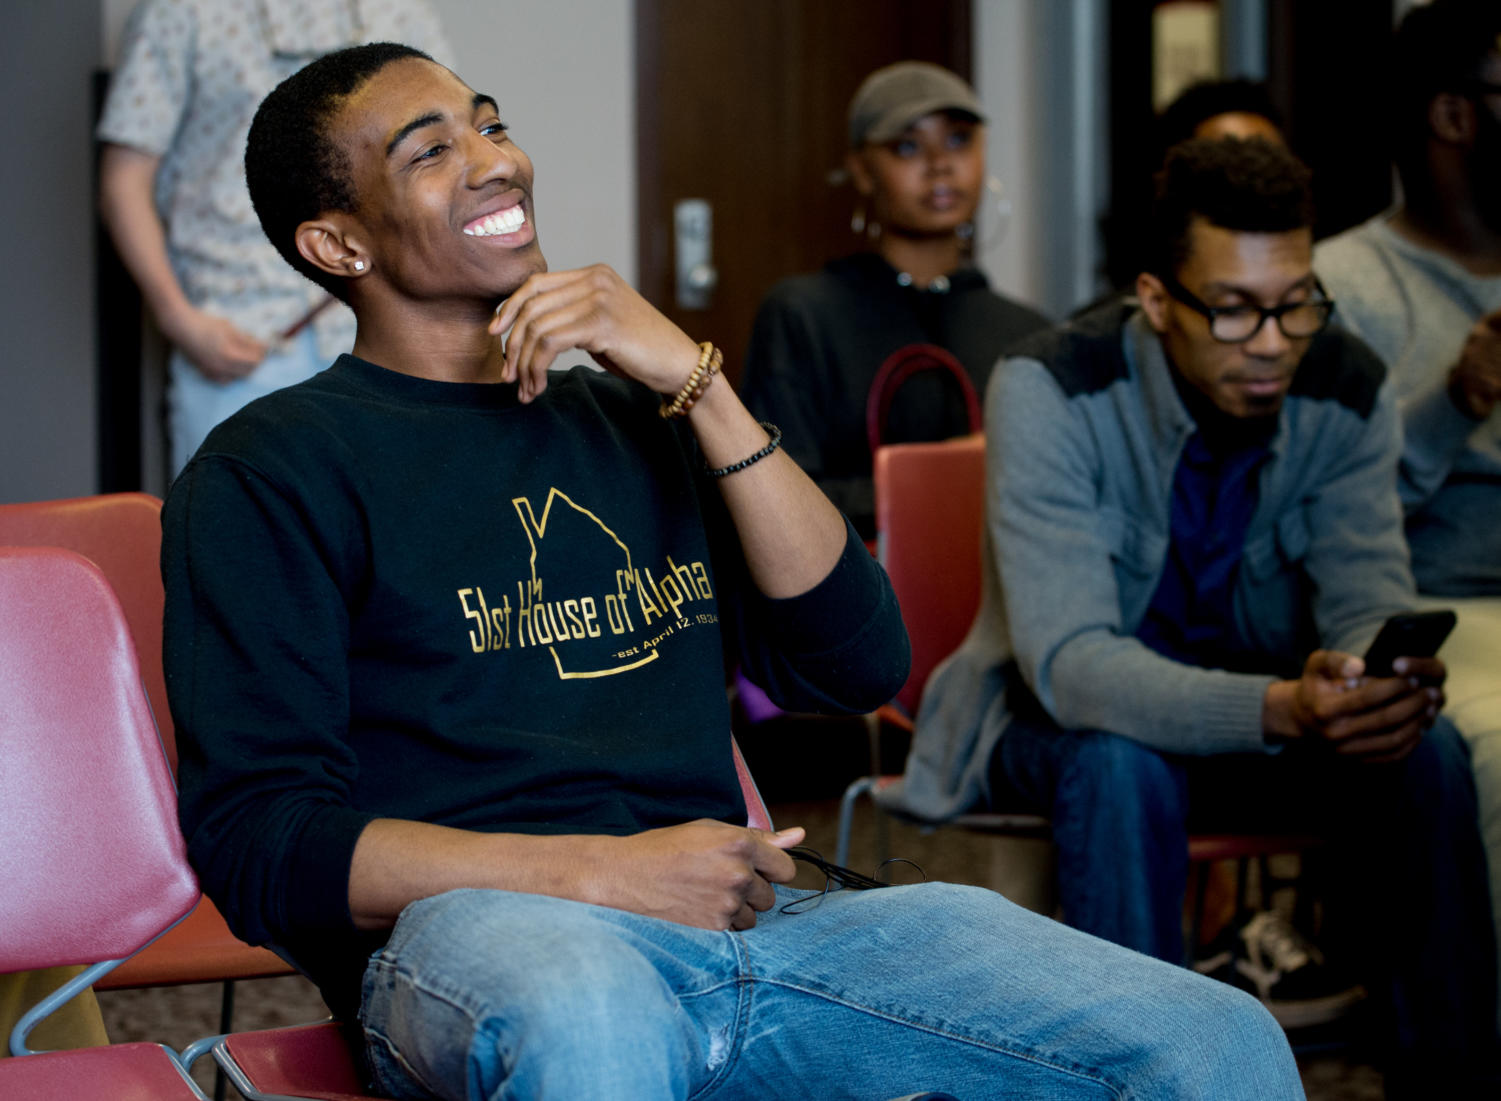 Newly elected Undergraduate Student Government president Toussaint Mitchell, a junior studying cinema from Aurora, reacts as the results of this year's election are announced Wednesday, April 11, 2018, in the Missouri Room of the Student Center. (Brian Munoz | @BrianMMunoz)